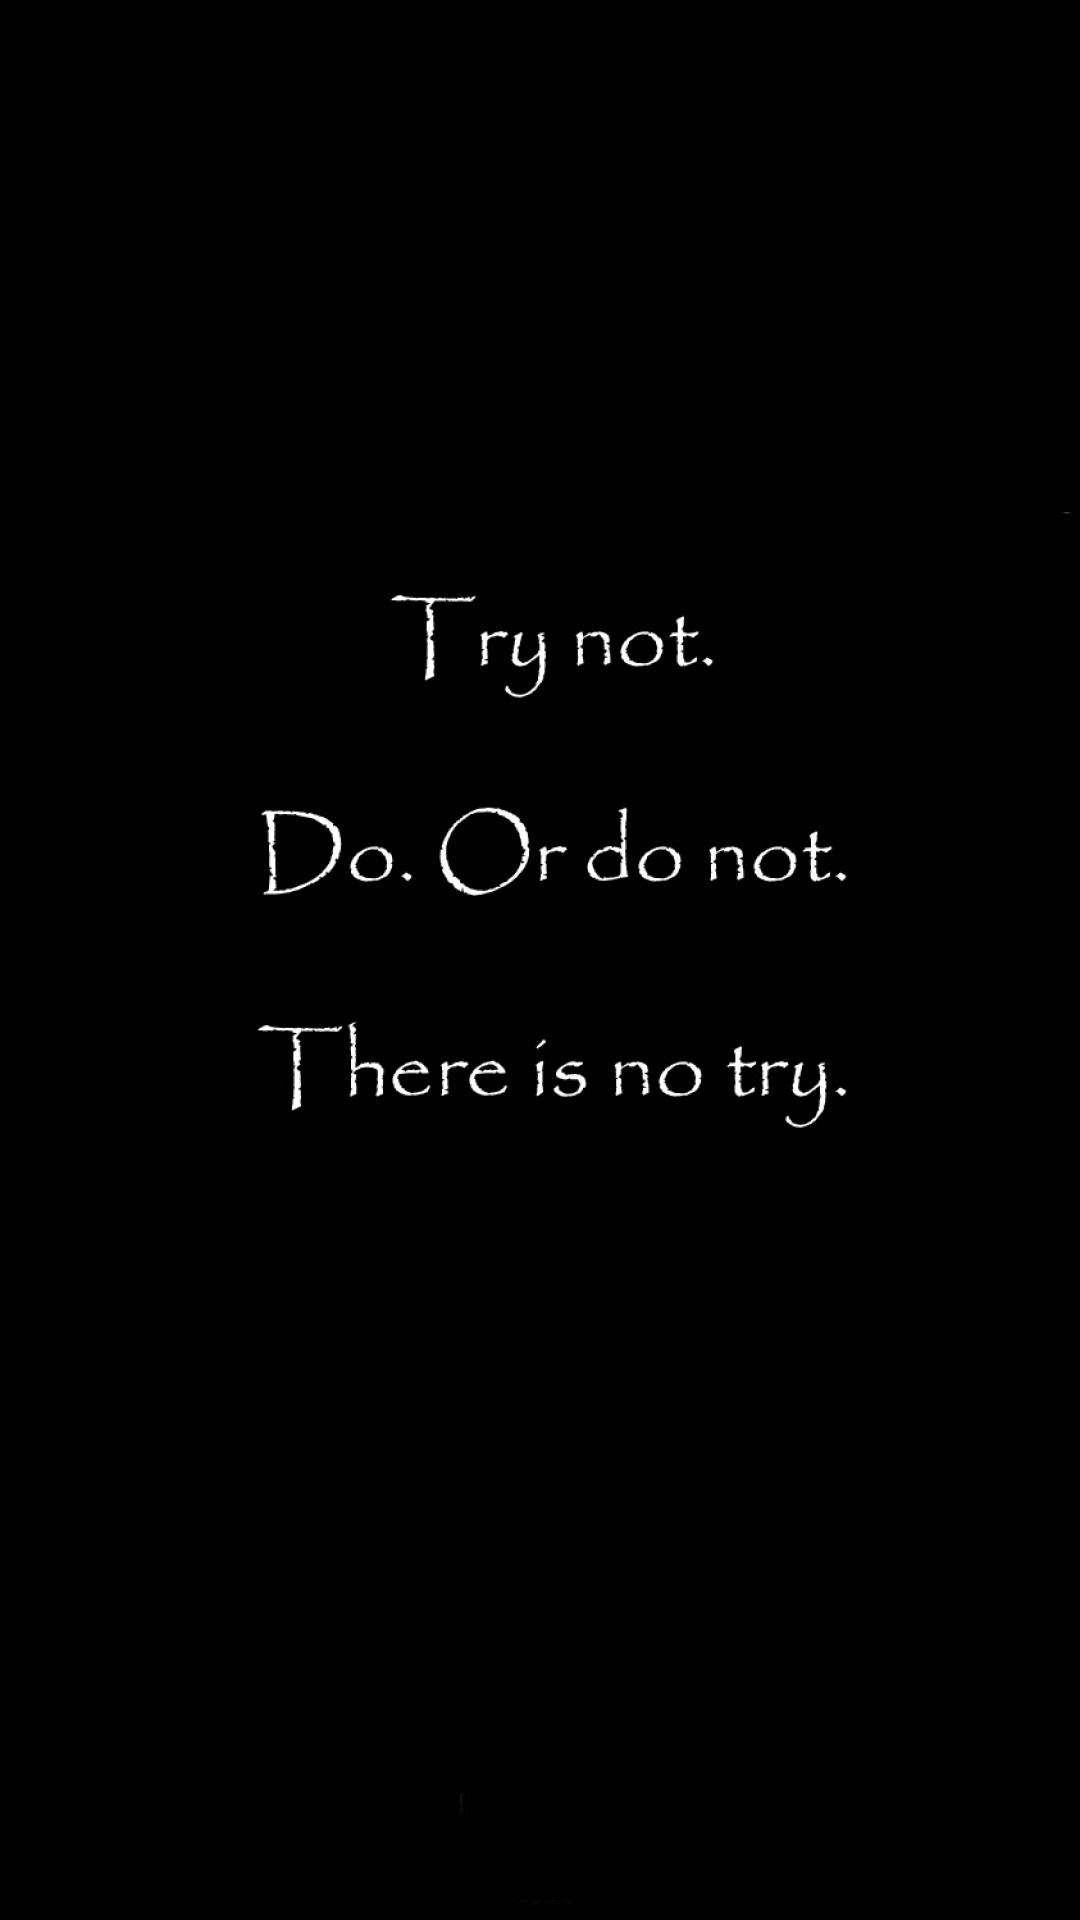 There Is No Try iPhone 8 Wallpapers Download 1080x1920